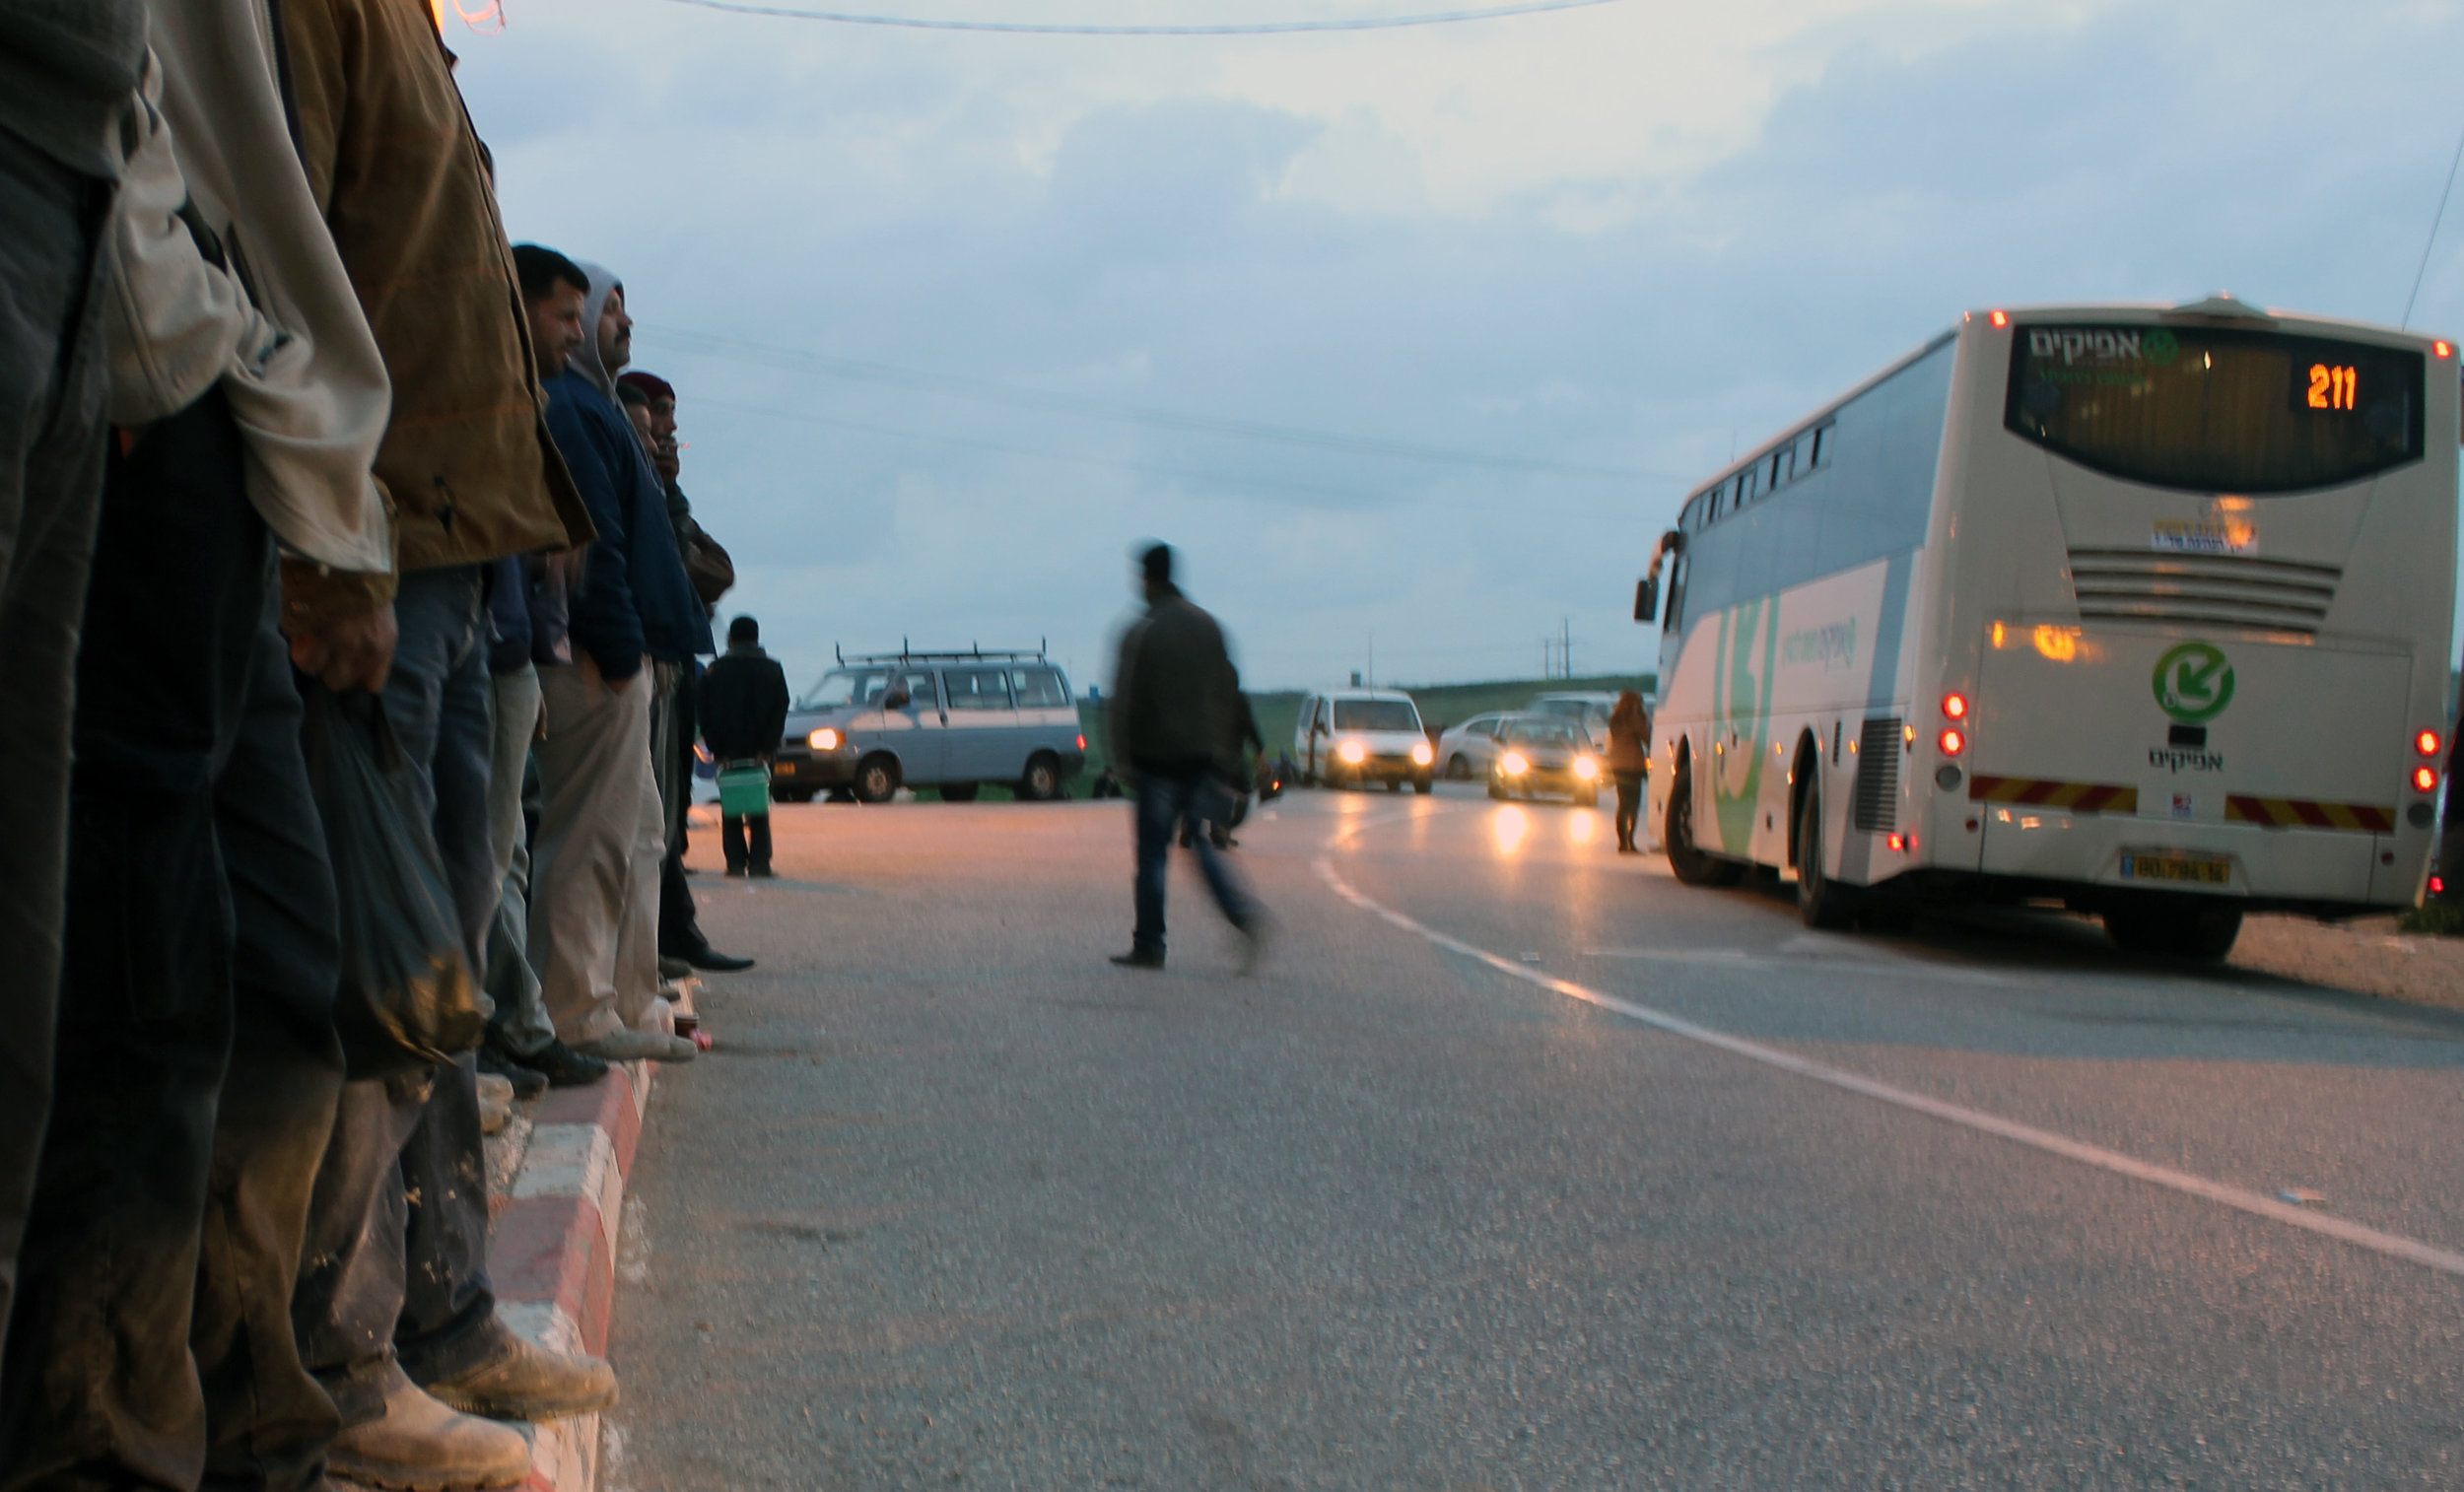 20130305 - Palestinian workers at curb waiting for bus.jpg